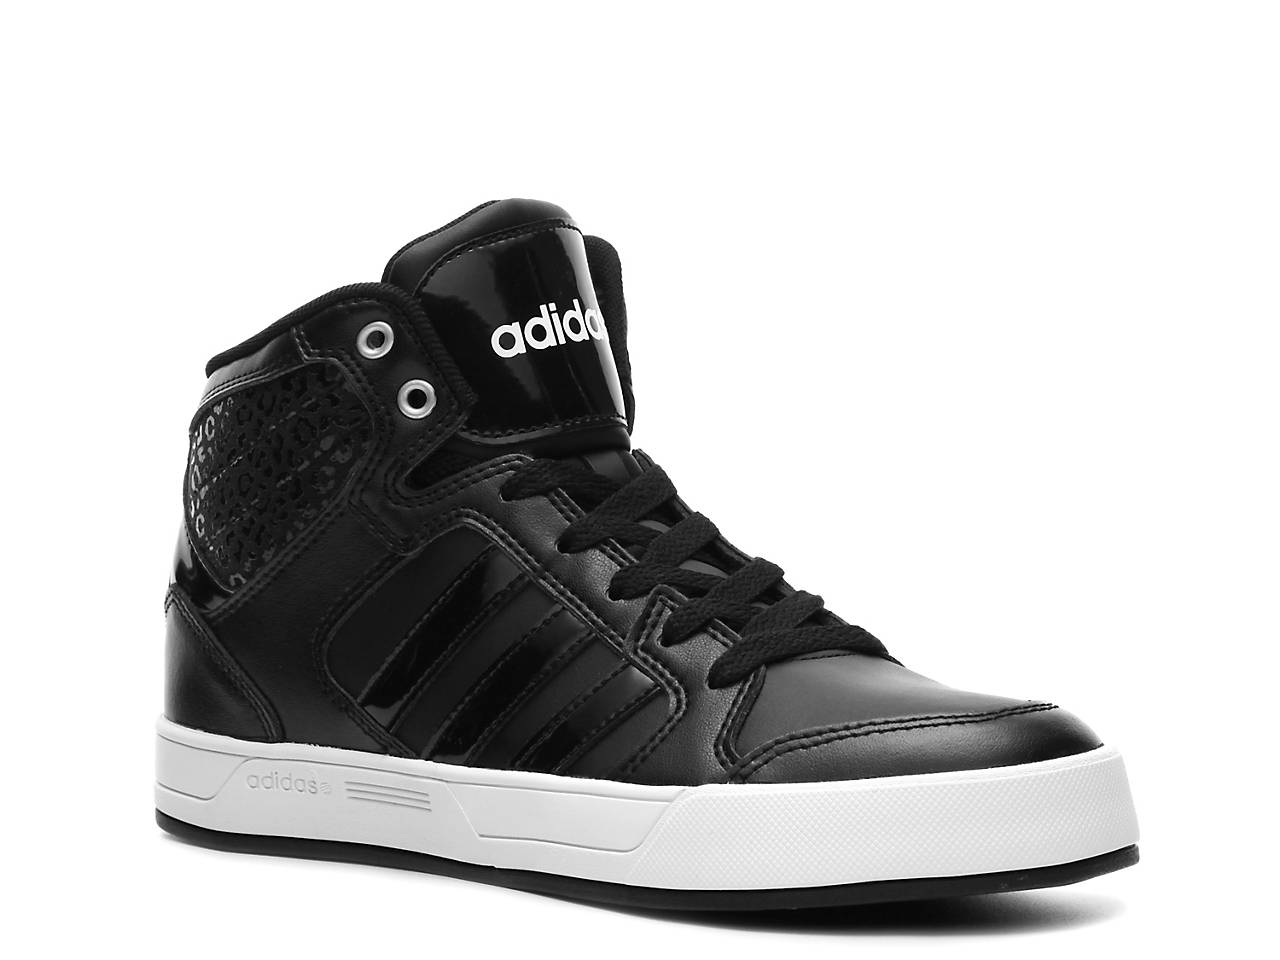 22a9da0f793cdc adidas NEO Raleigh High-Top Sneaker - Women s Women s Shoes